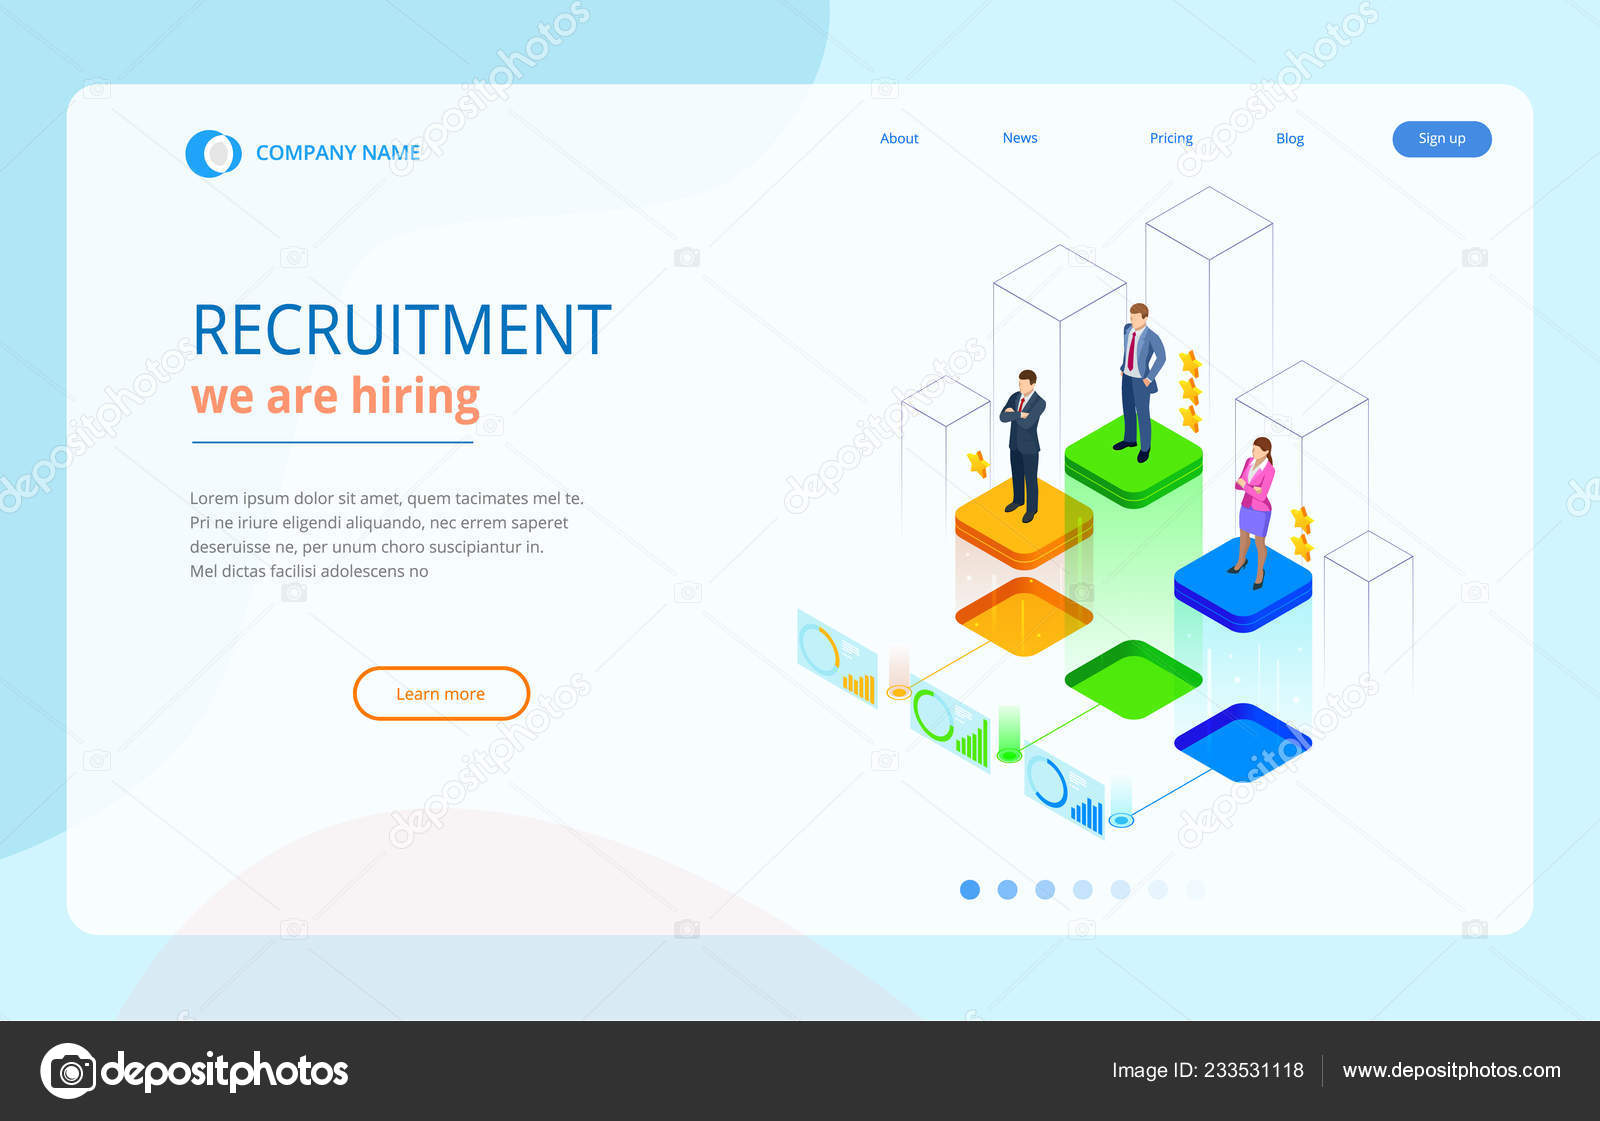 Online Job Search >> Isometric Online Job Search And Human Resource Recruitment